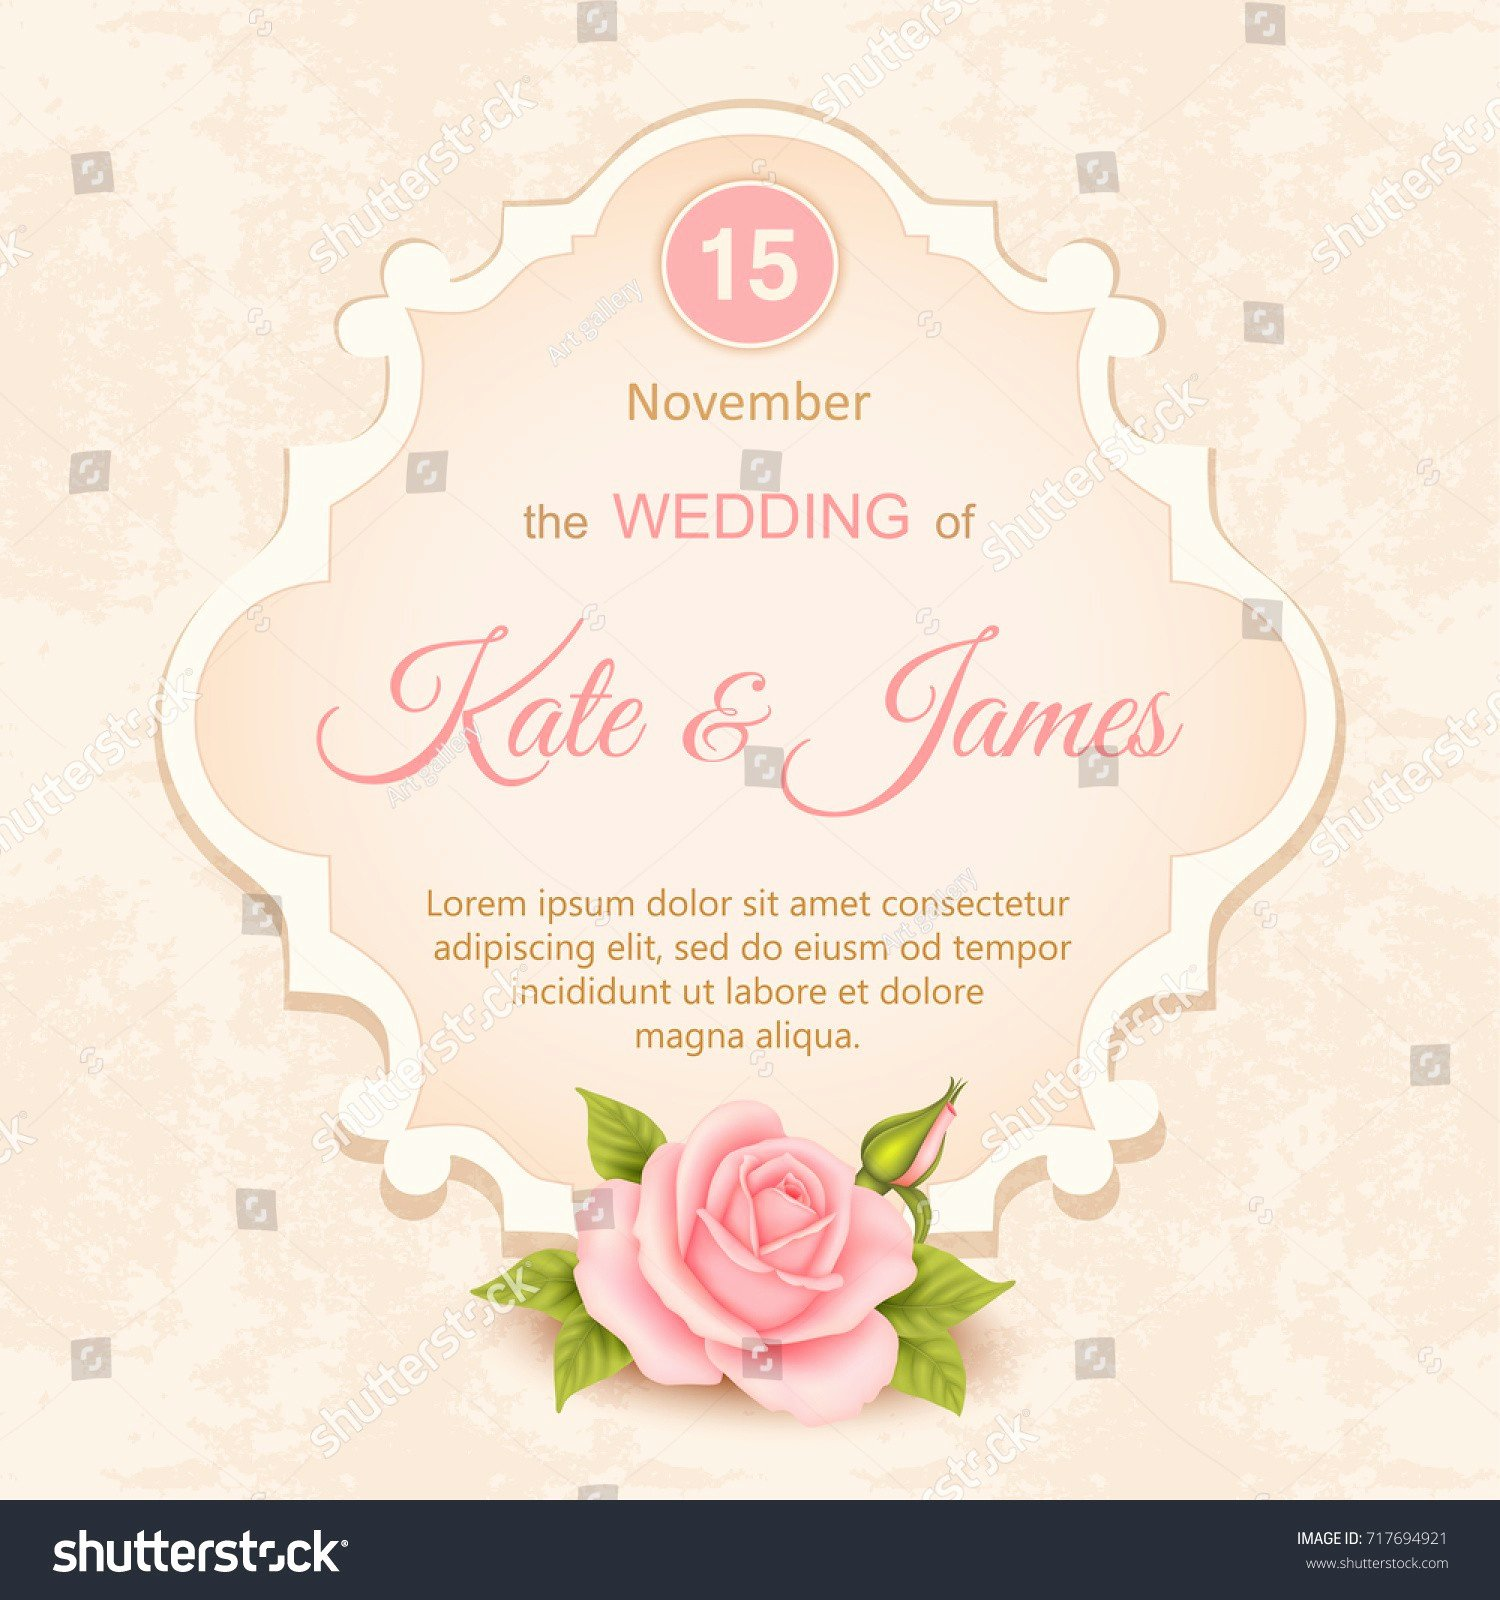 Wedding Anniversary Invitation Template Lovely 60th Wedding Anniversary Invitations Templates